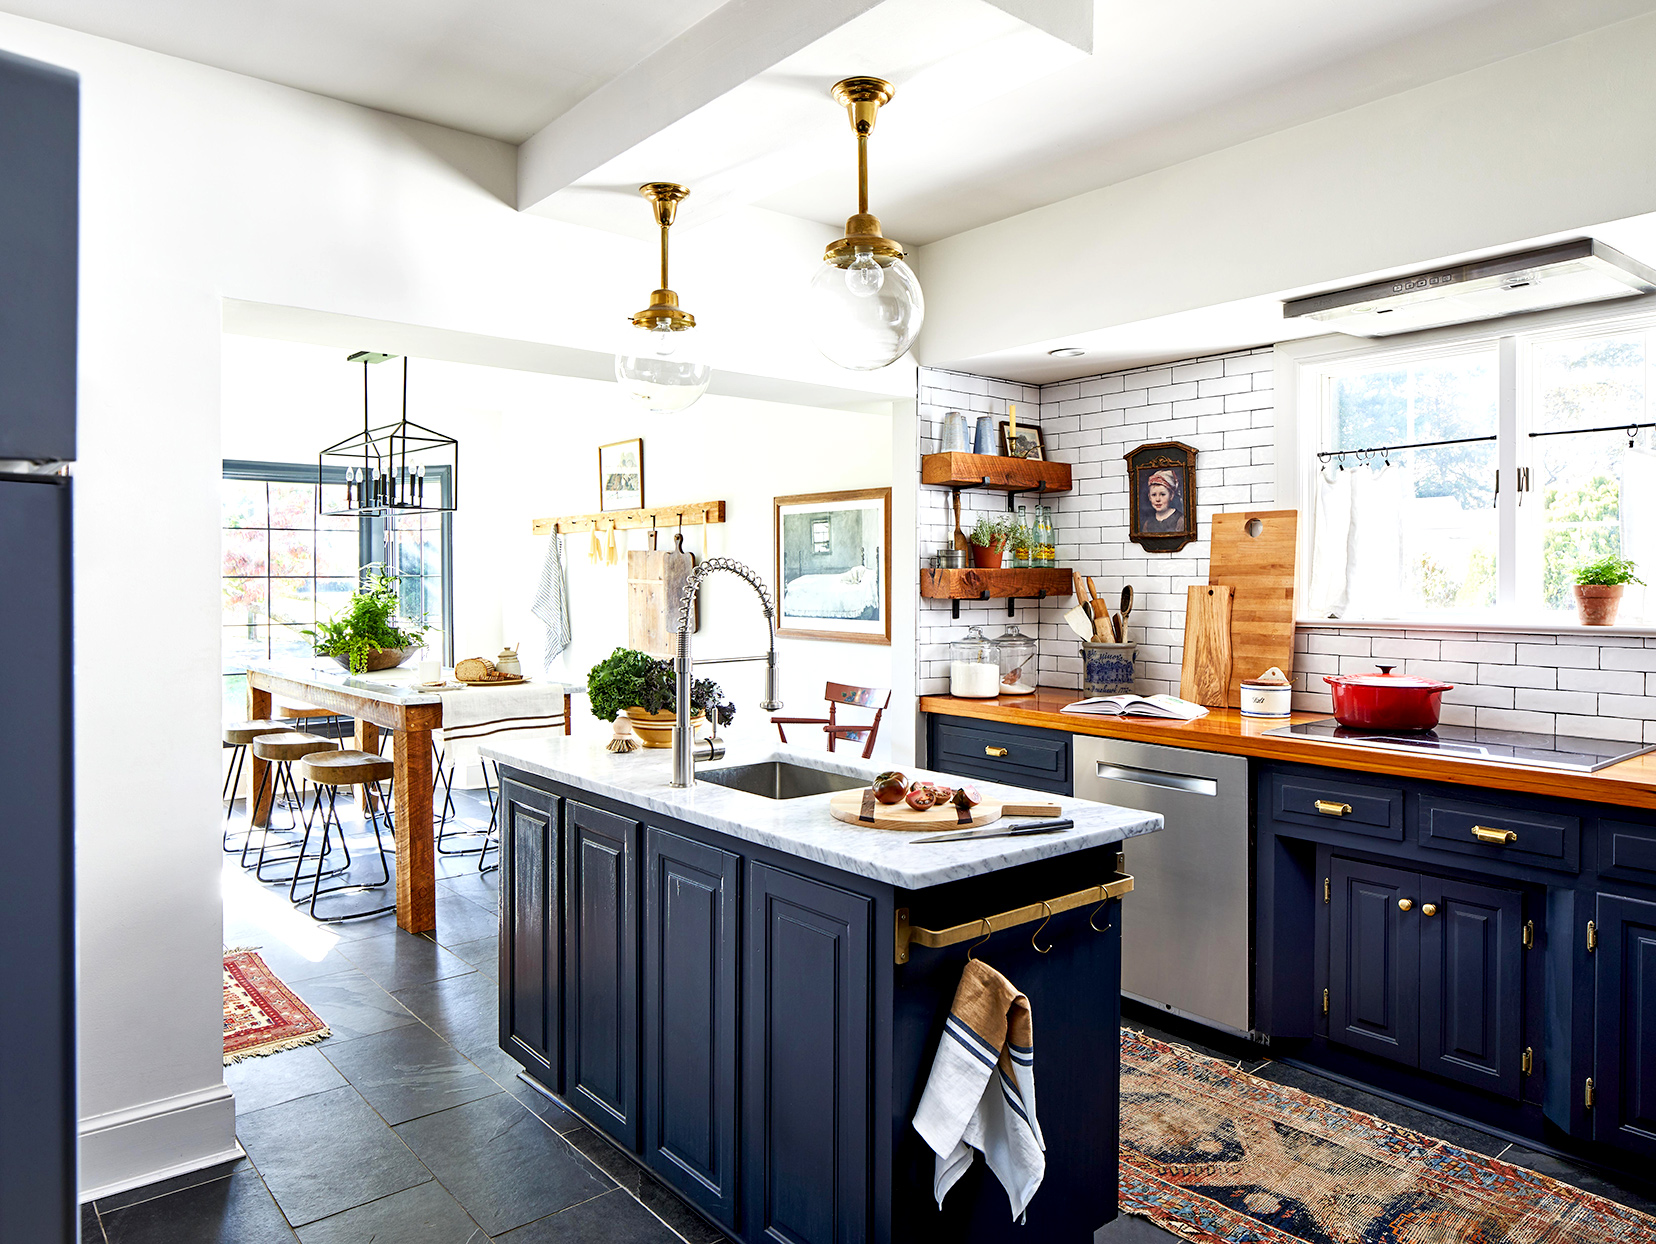 11 Blue Kitchen Ideas for a Refreshingly Colorful Cooking Space